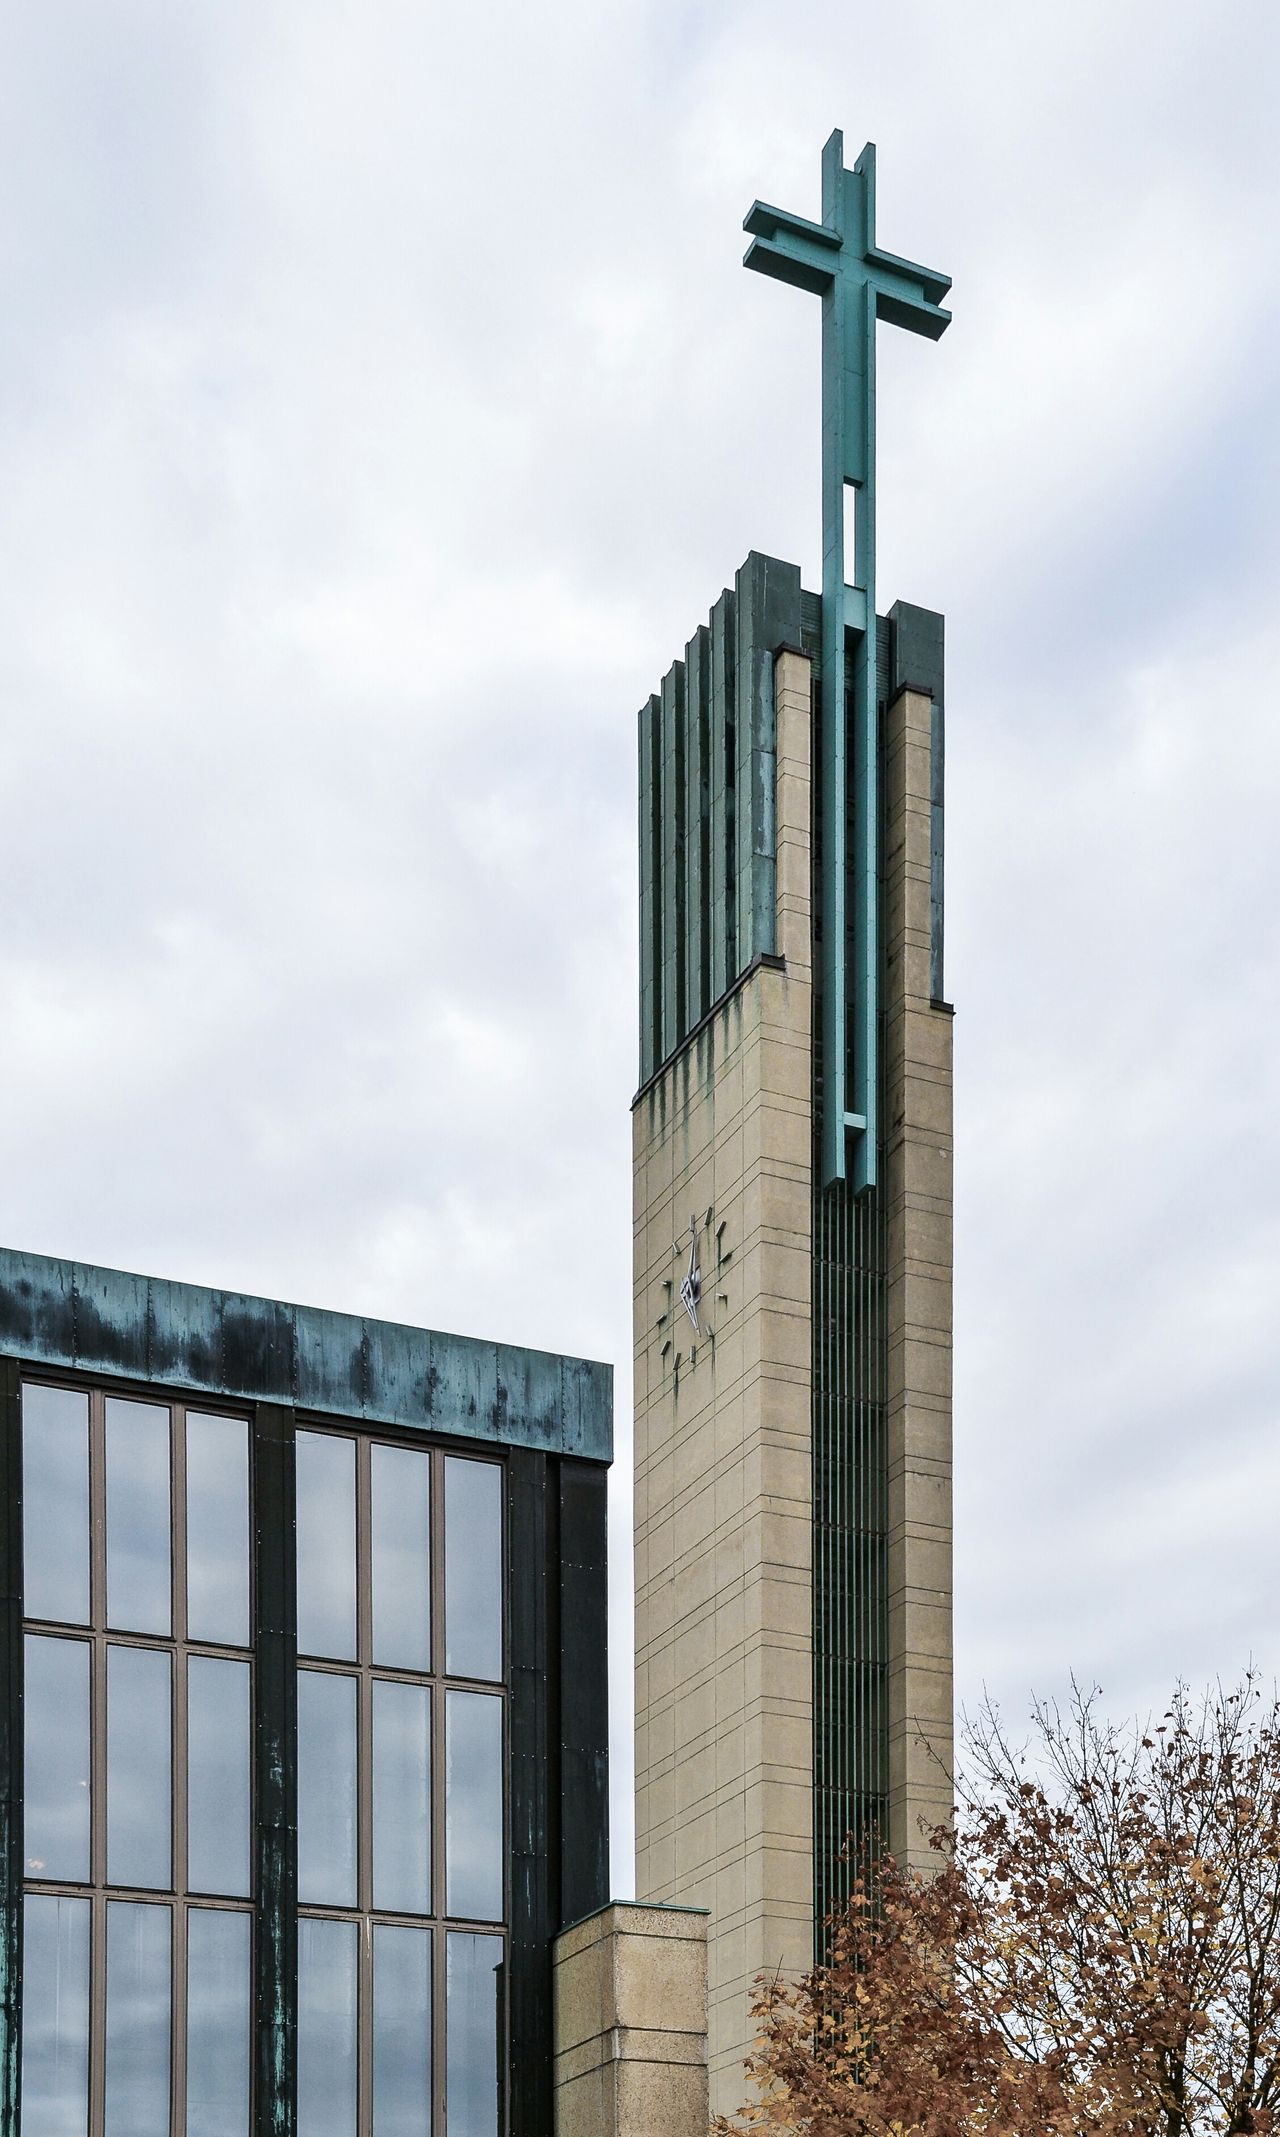 Lauttasaari Helsinki Church Architecture Architectural Photography Lens Correction Tower Clock Straight Façade